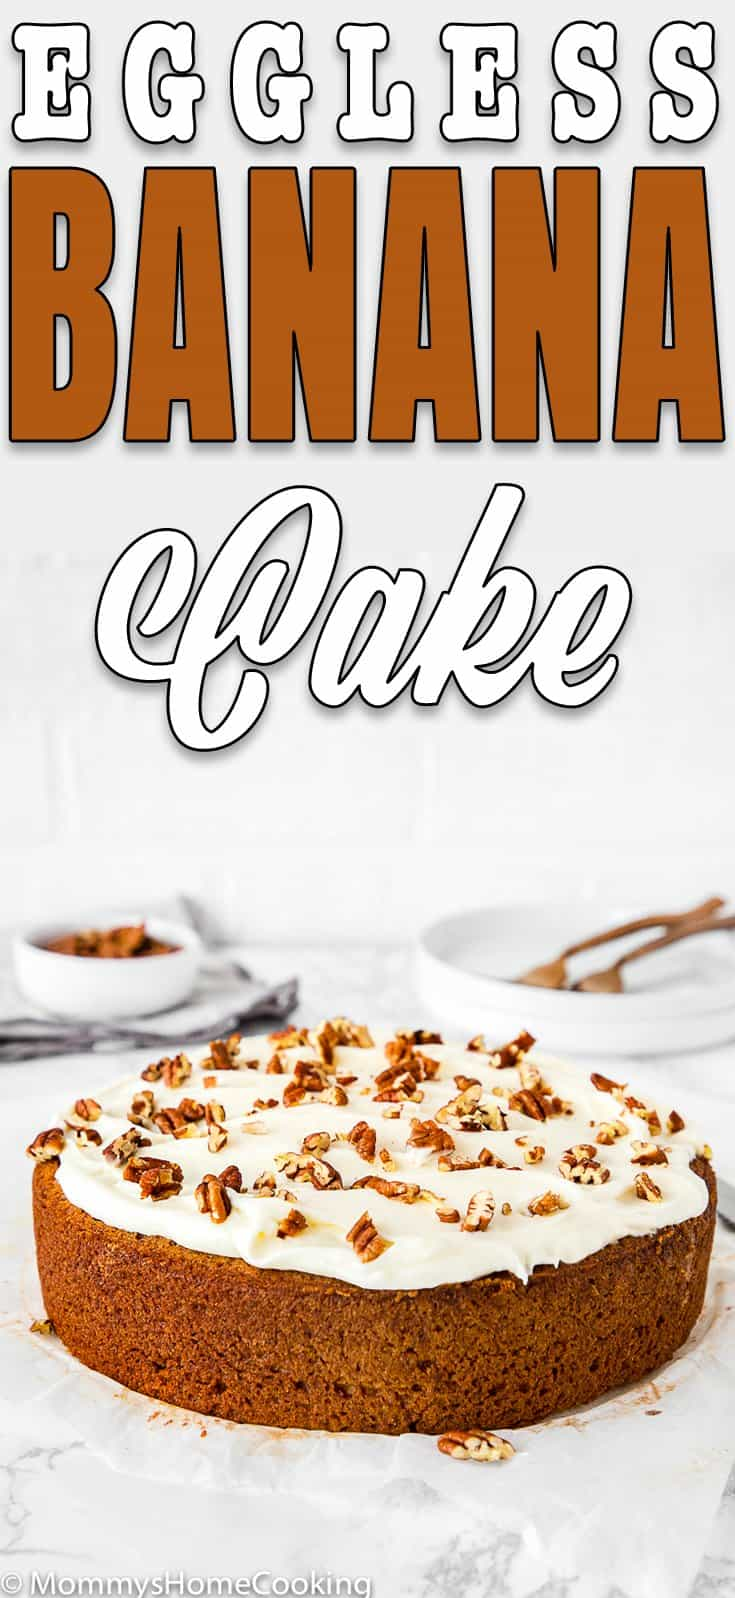 Easy eggless banana cake with cream cheese frosting and chopped pecans with descriptive text